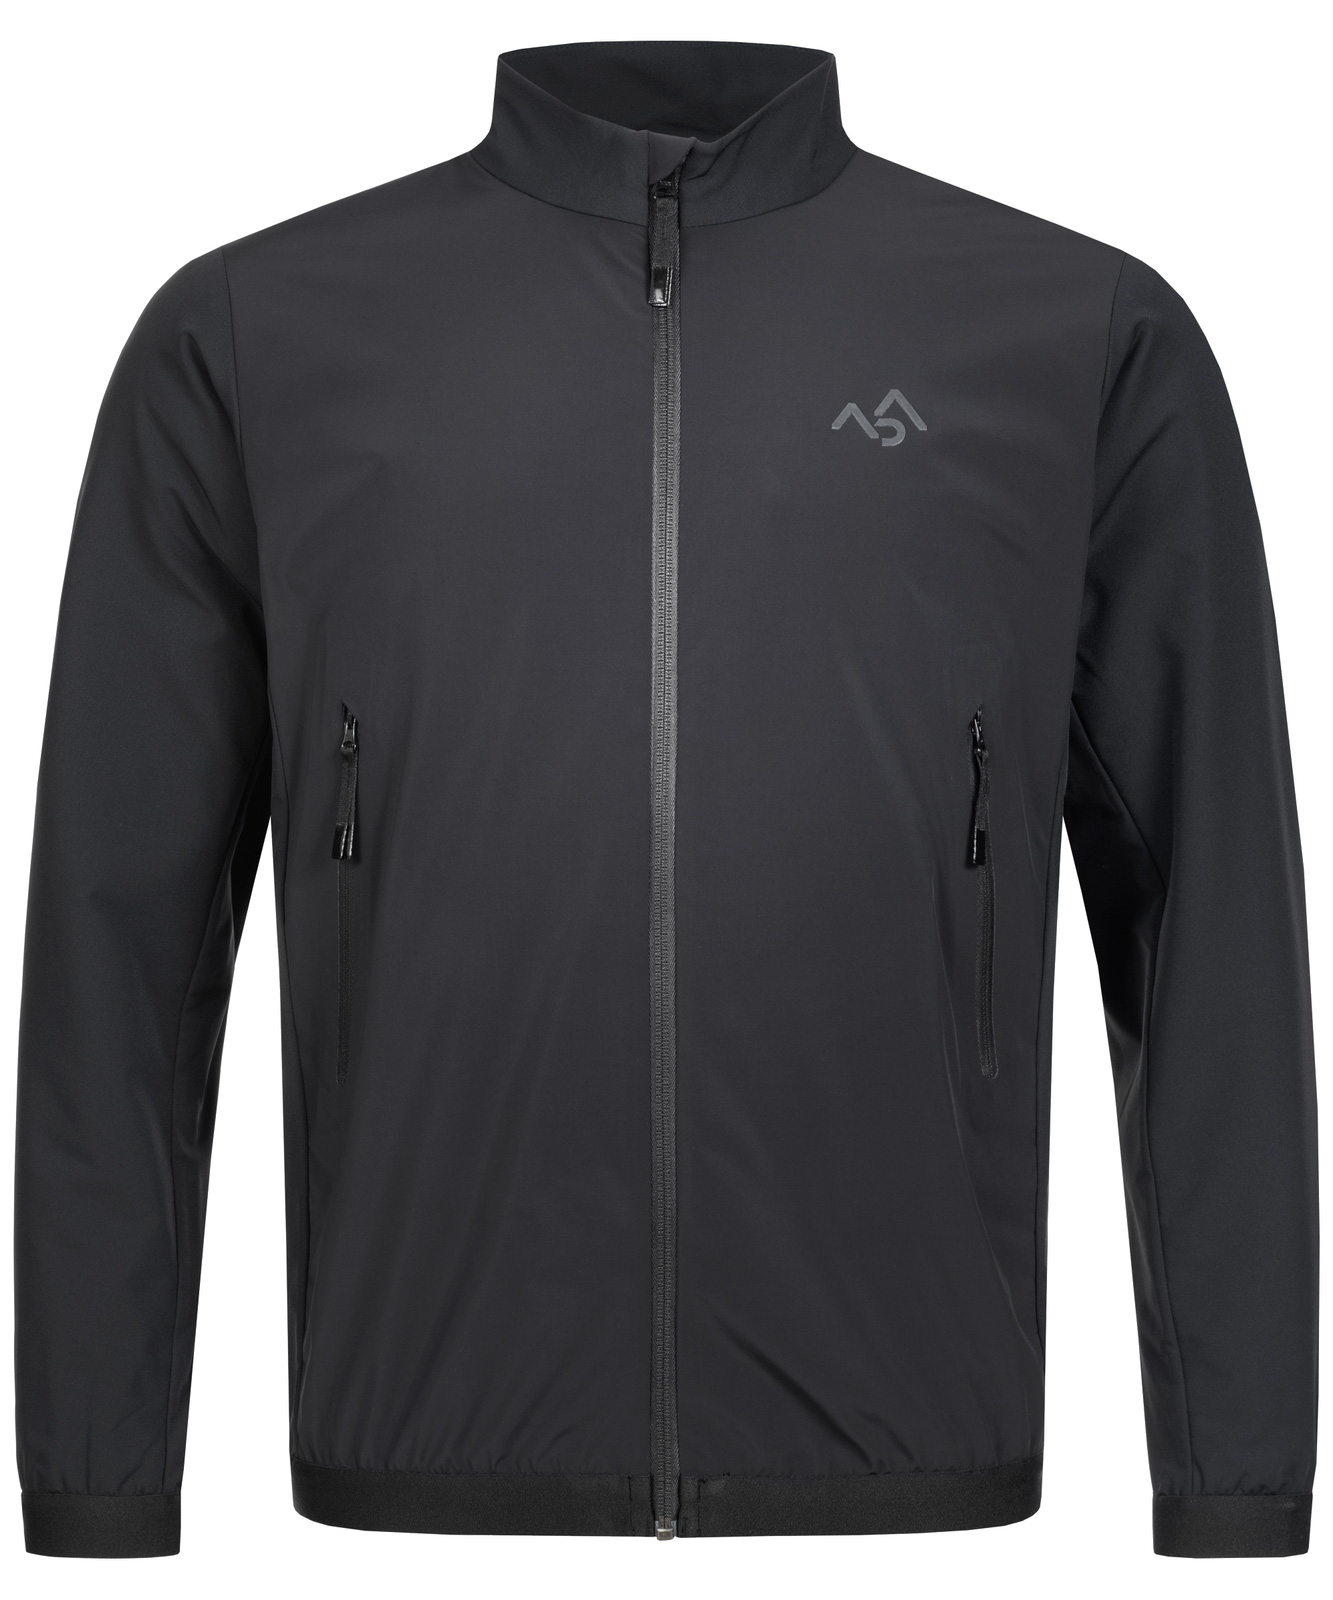 MX15 Touring Jacket